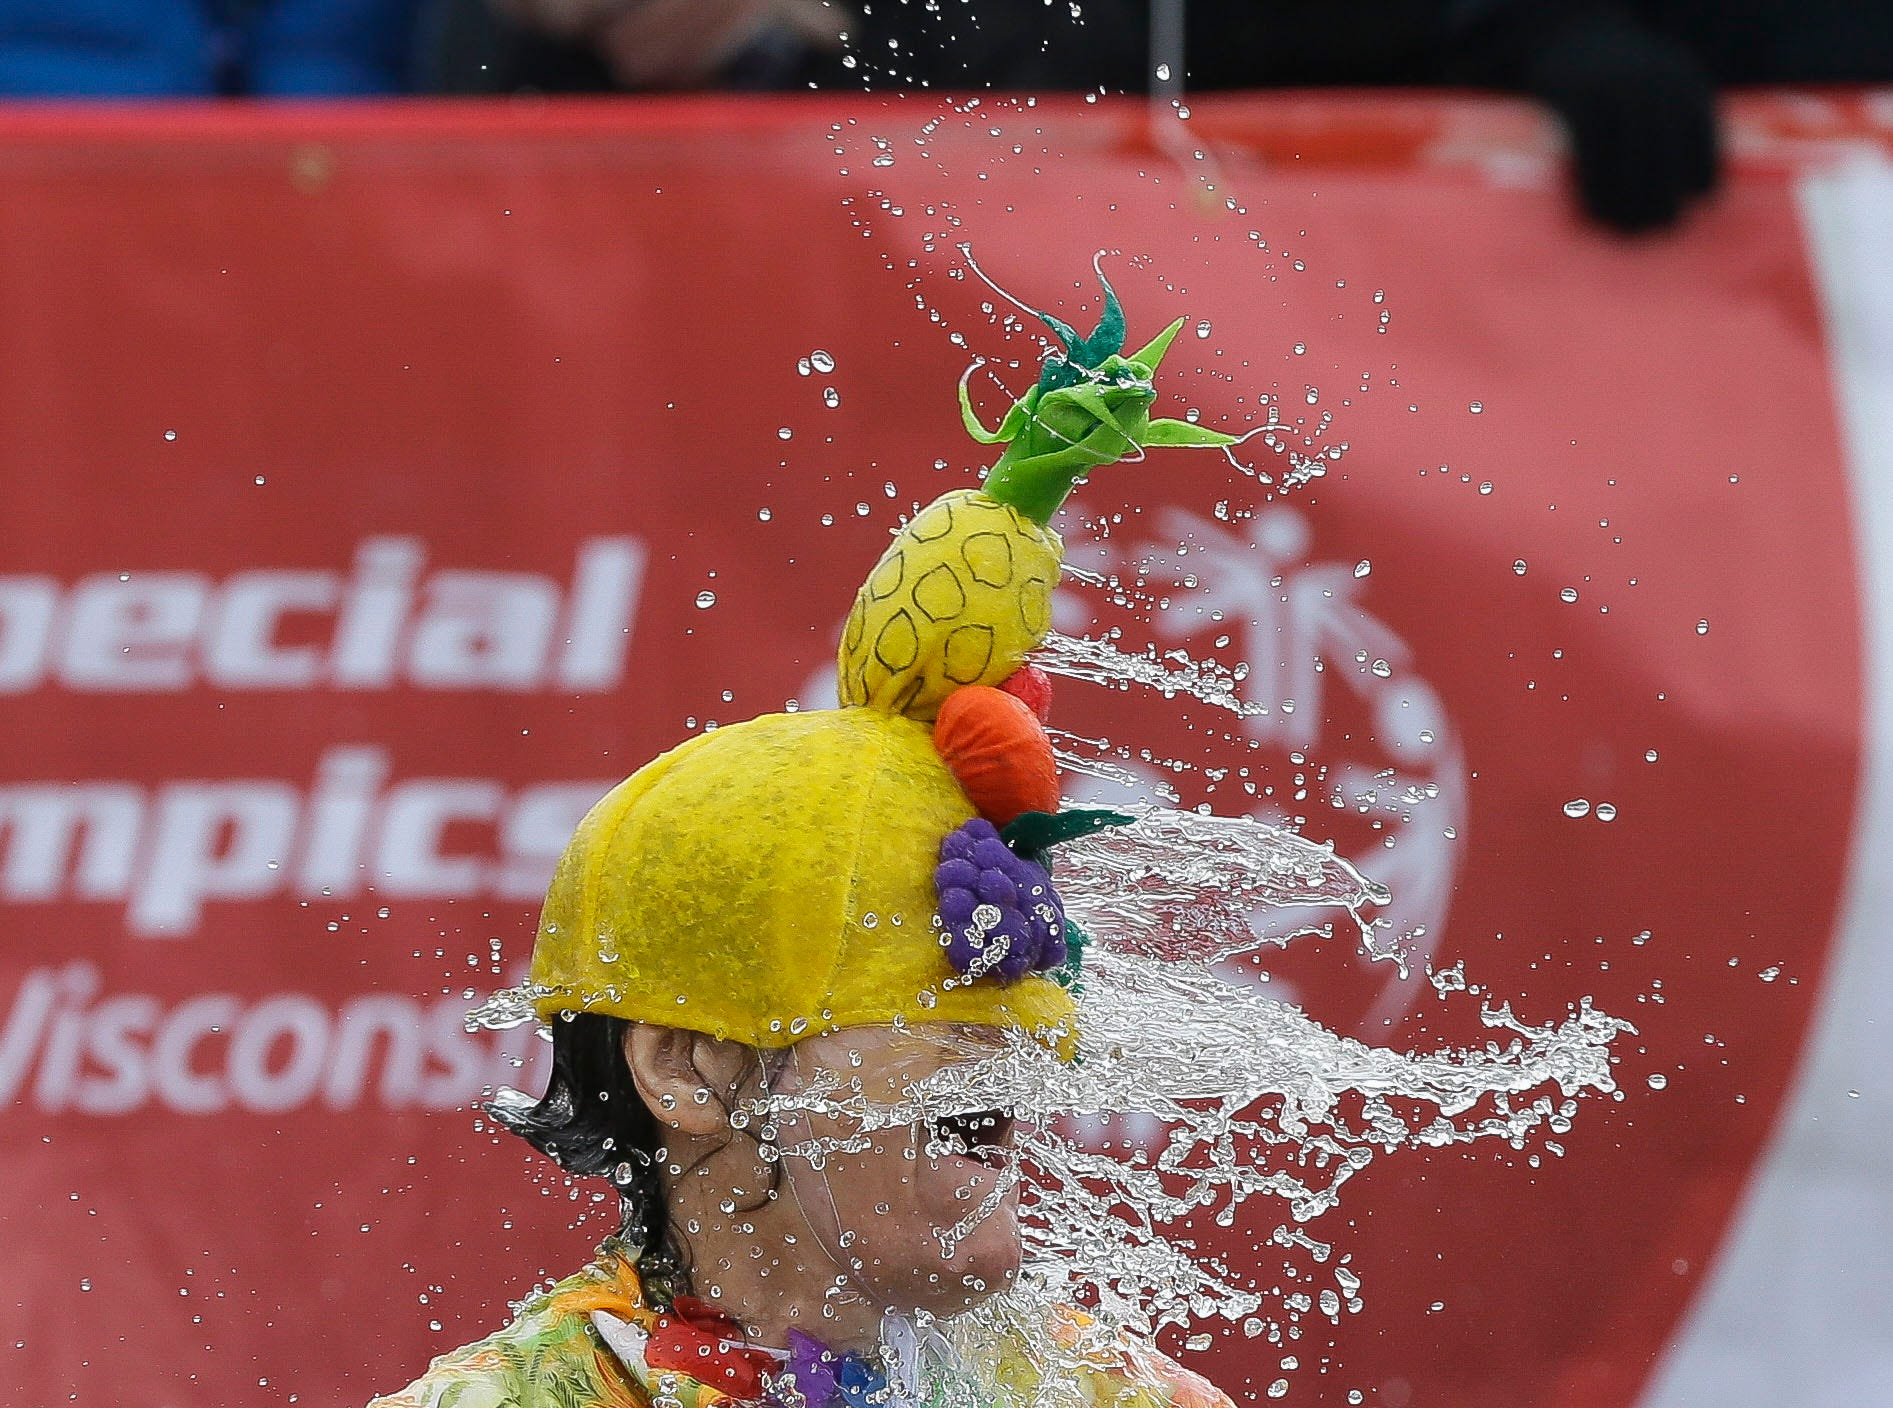 A participant emerges from the water after taking the polar plunge on Saturday, February 2, 2019, at Anchor Bay Bar and Grill in Biron, Wis. The event was one of many polar plunges across the state held as fundraisers for Special Olympics Wisconsin.Tork Mason/USA TODAY NETWORK-Wisconsin